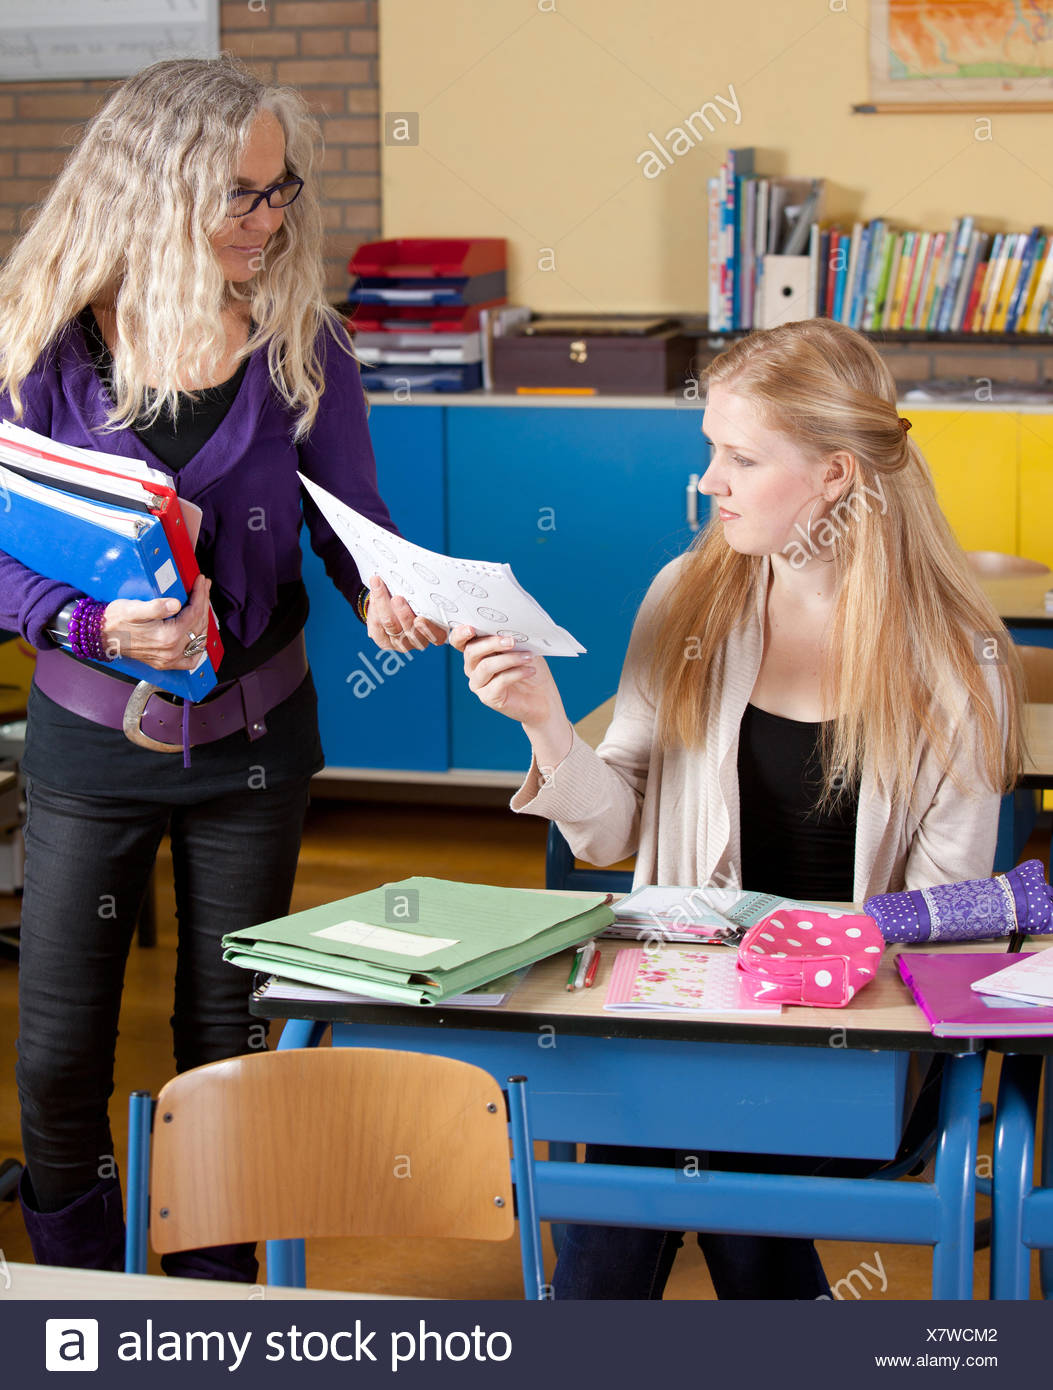 handing out test papers stock photo 280227250 alamy